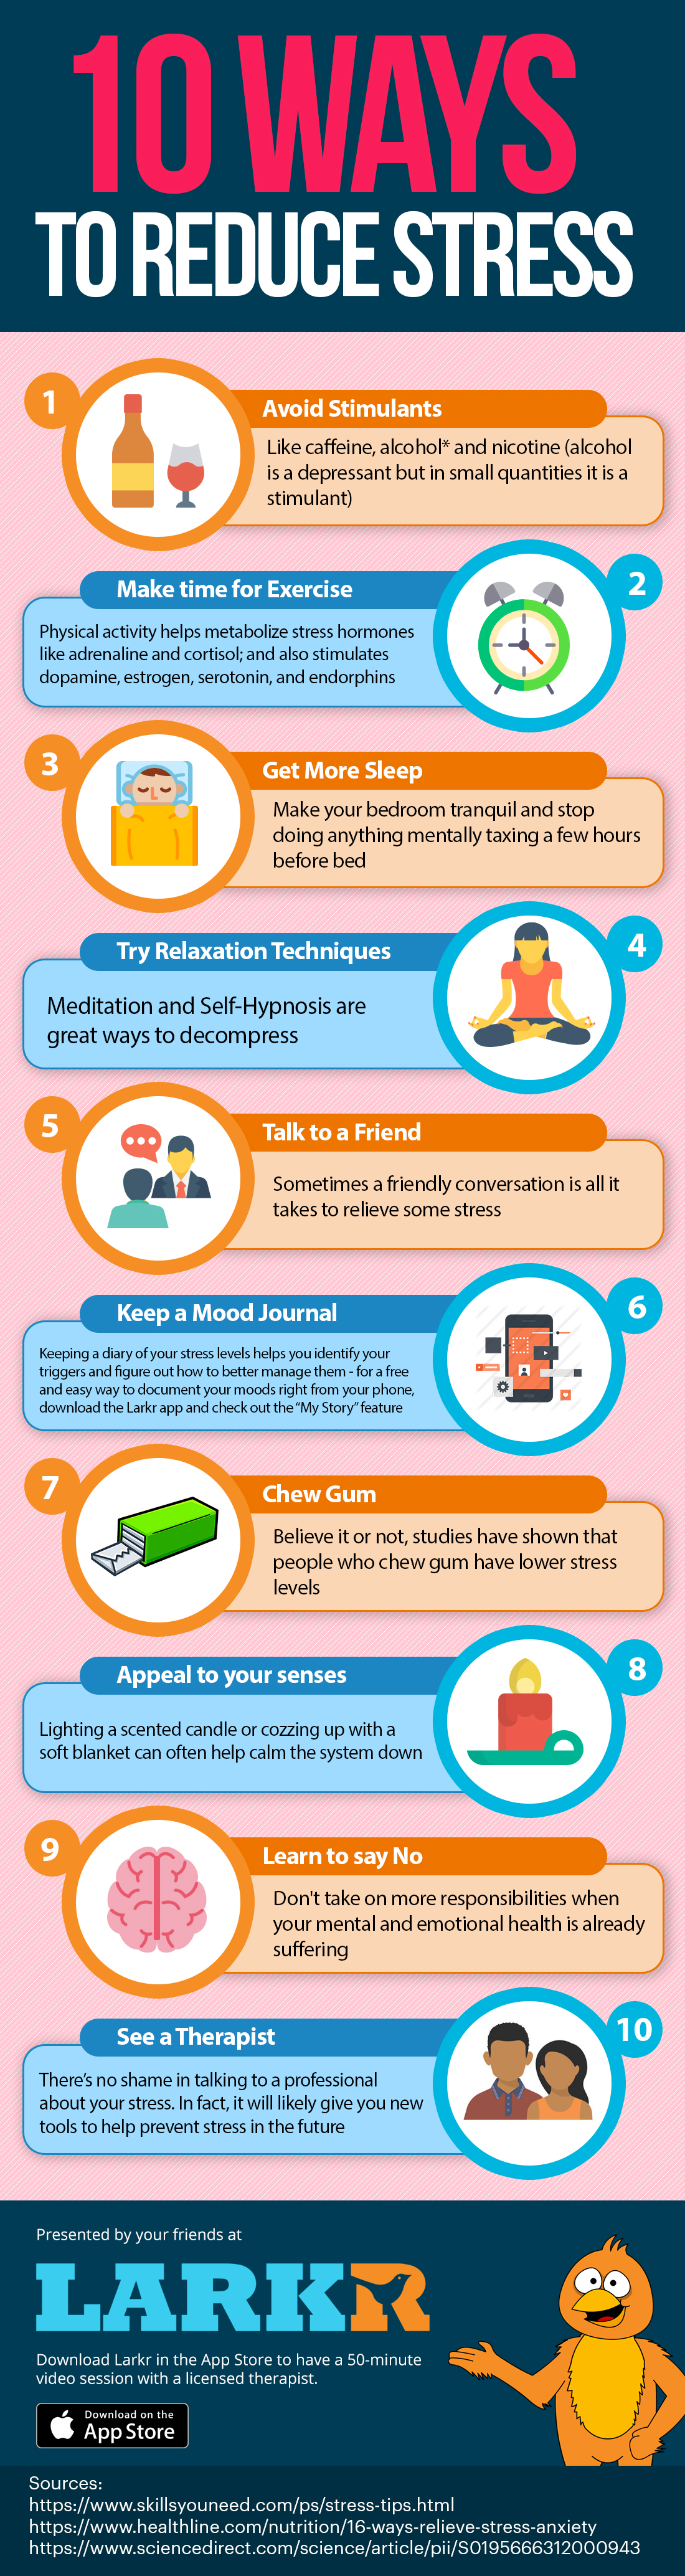 https://assets.entrepreneur.com/images/misc/1521211123_10-ways-reduce-stress-infographic.png